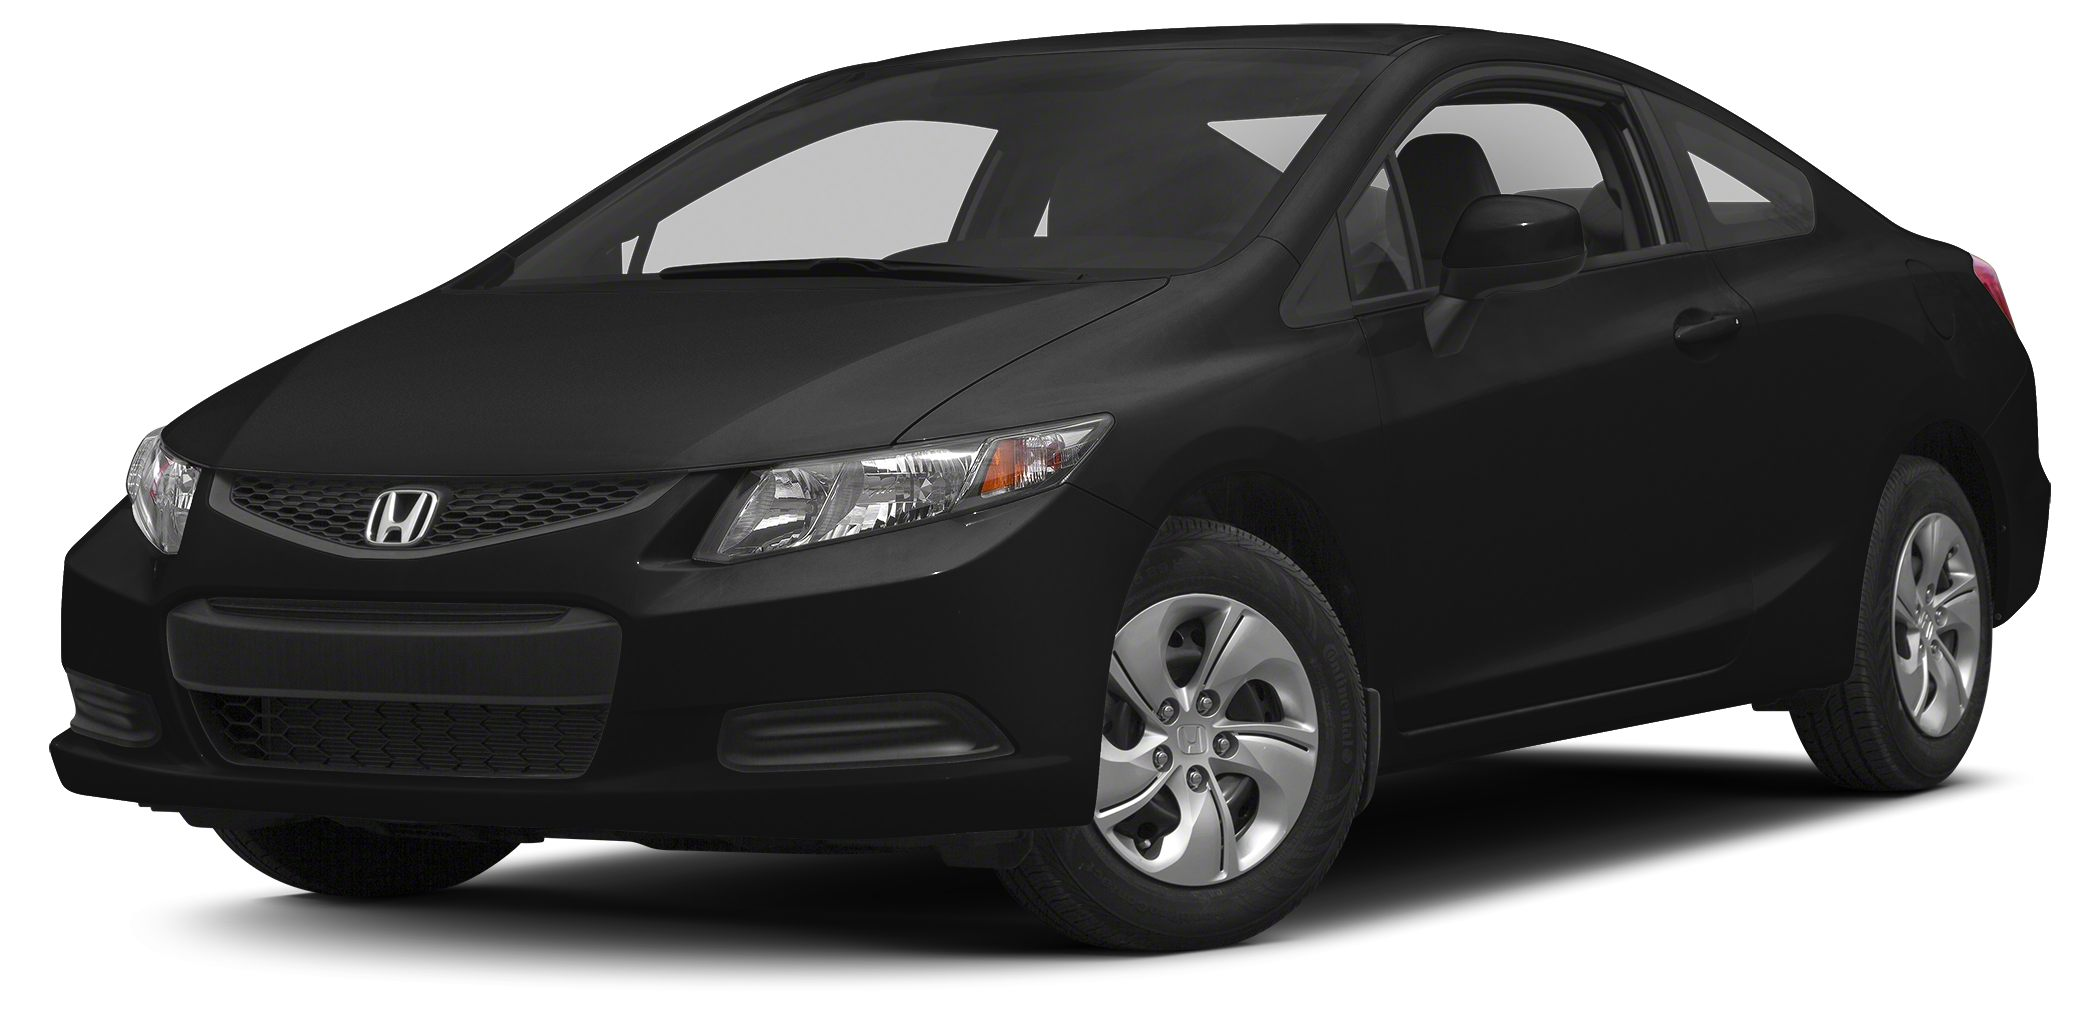 2013 Honda Civic LX Miles 21390Color Crystal Black Pearl Stock T40895A VIN 2HGFG3B55DH504112